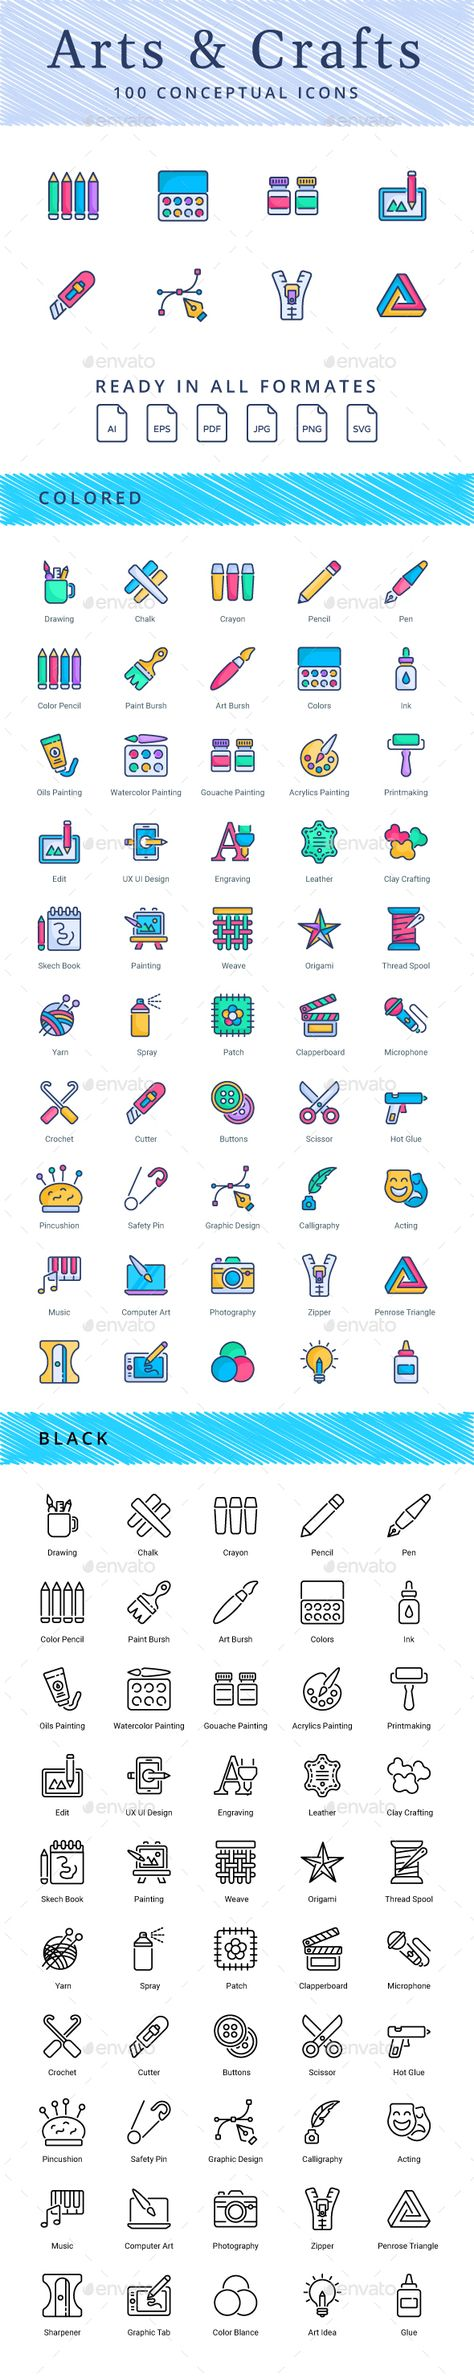 Arts and Crafts. Fully customisable set of icons. #icon #design #art #digitalArt #application #arts #blogging #calligraphy #ClayCrafting #clothes #clothing #color #compose #crafts #draw #drawing #education #gouache #hobbies #ink #knitting #leather #material #OilsPainting #paint #palette #picture #school #stationary #teaching #textile #UxUiDesign #watercolors